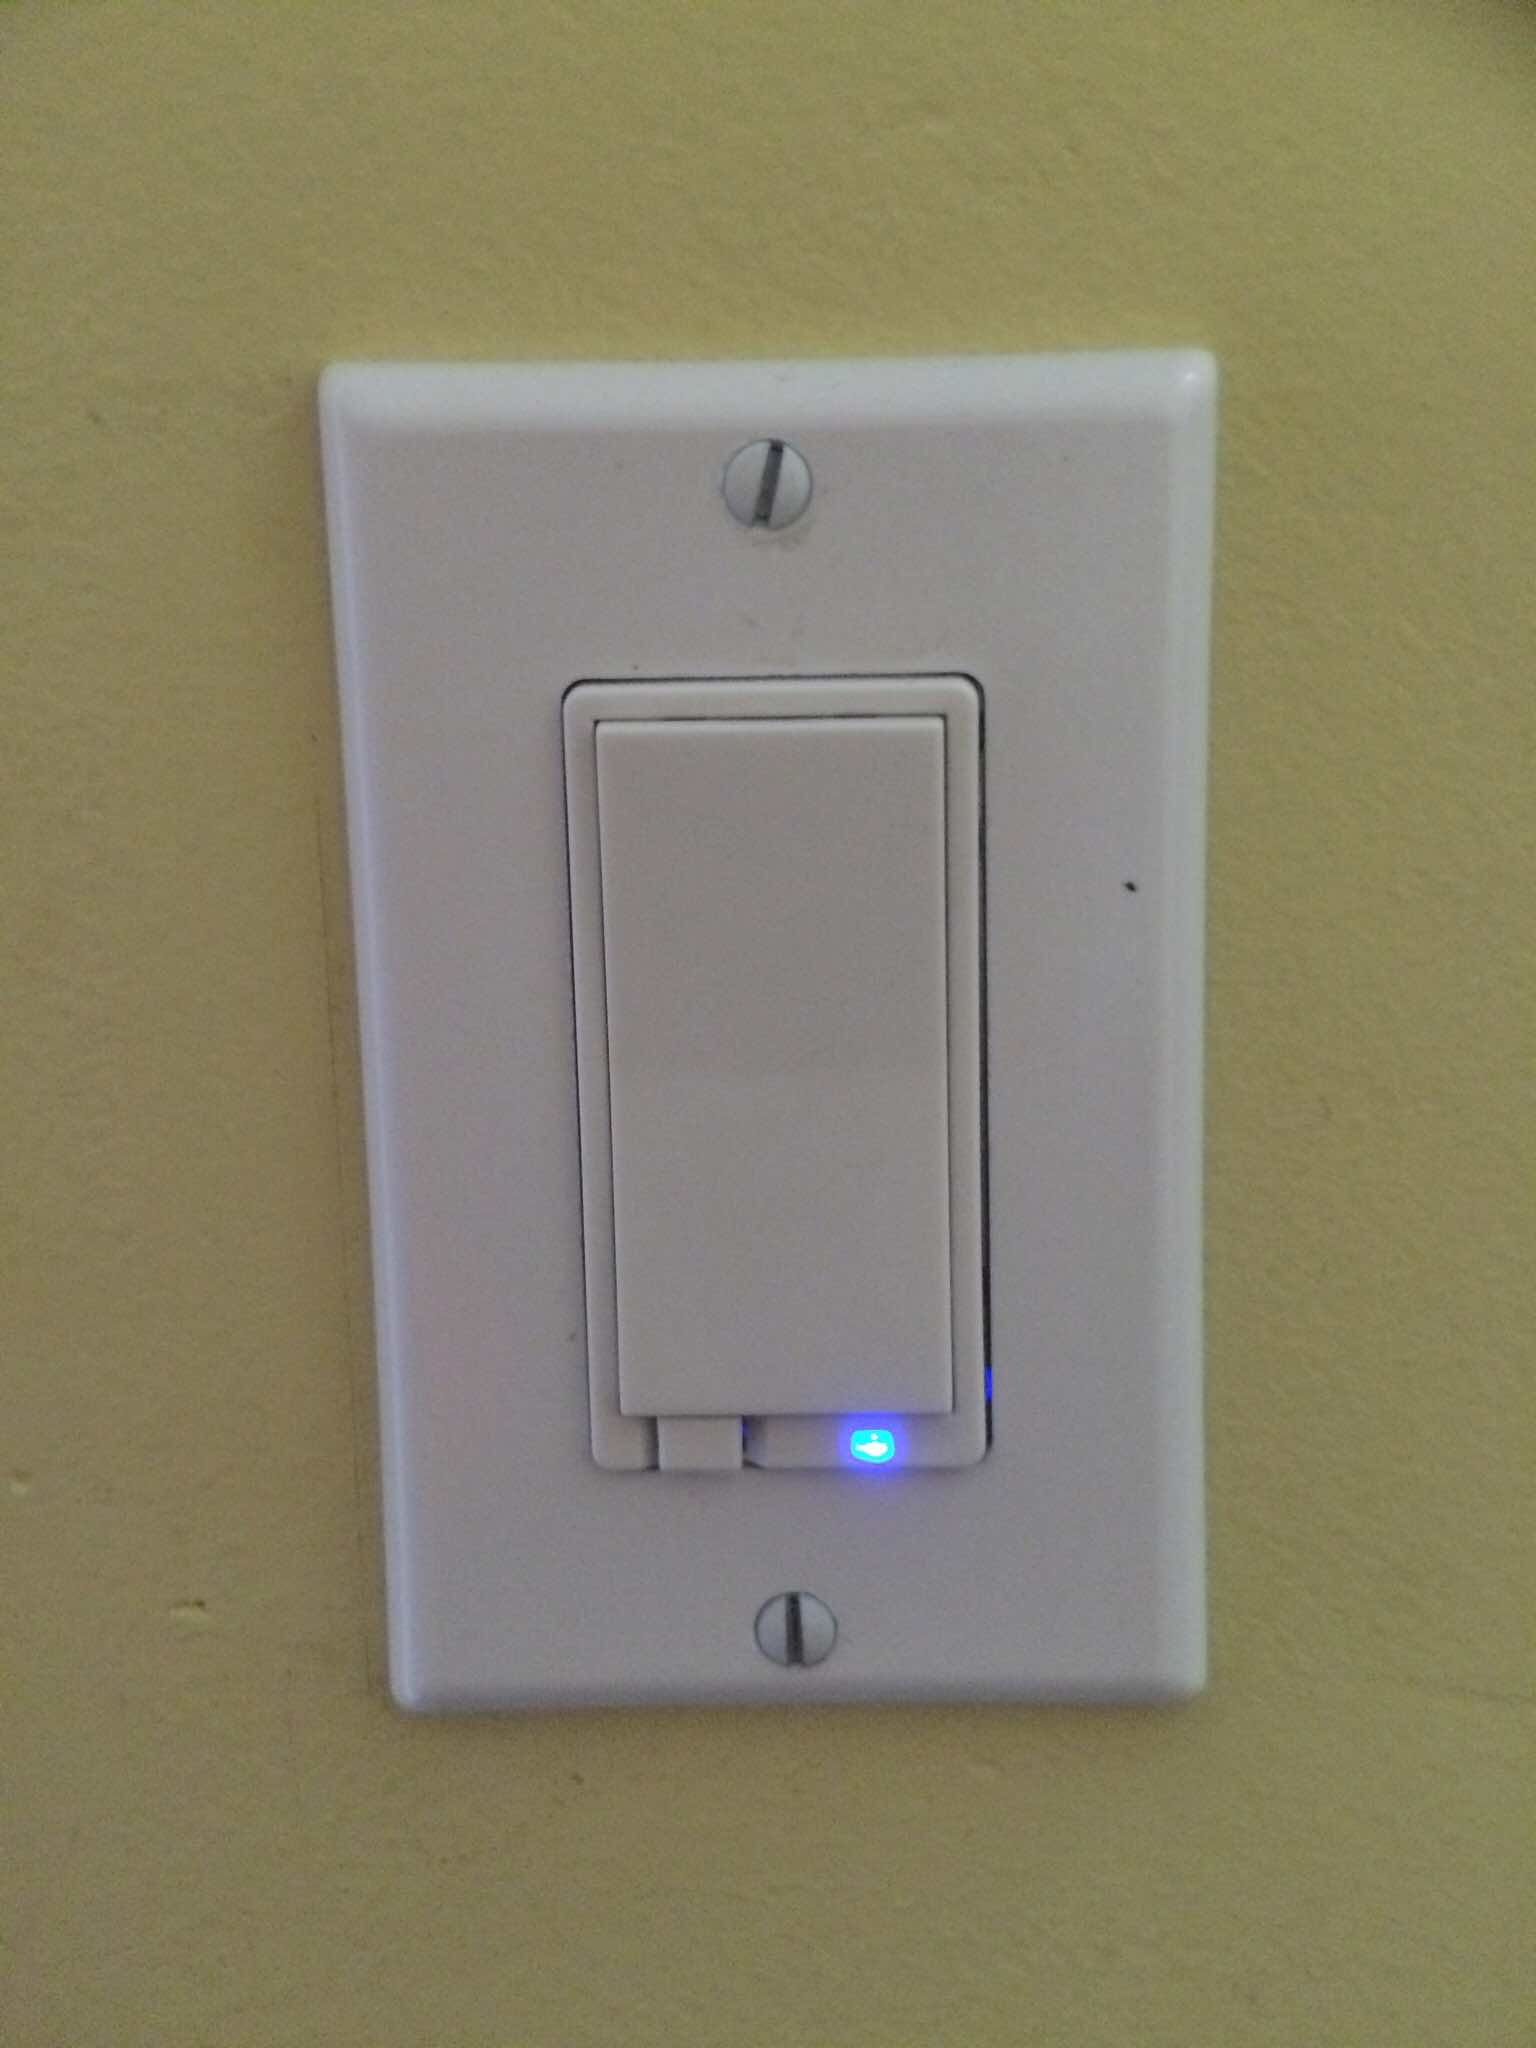 lighting  What different types of remotely controlled